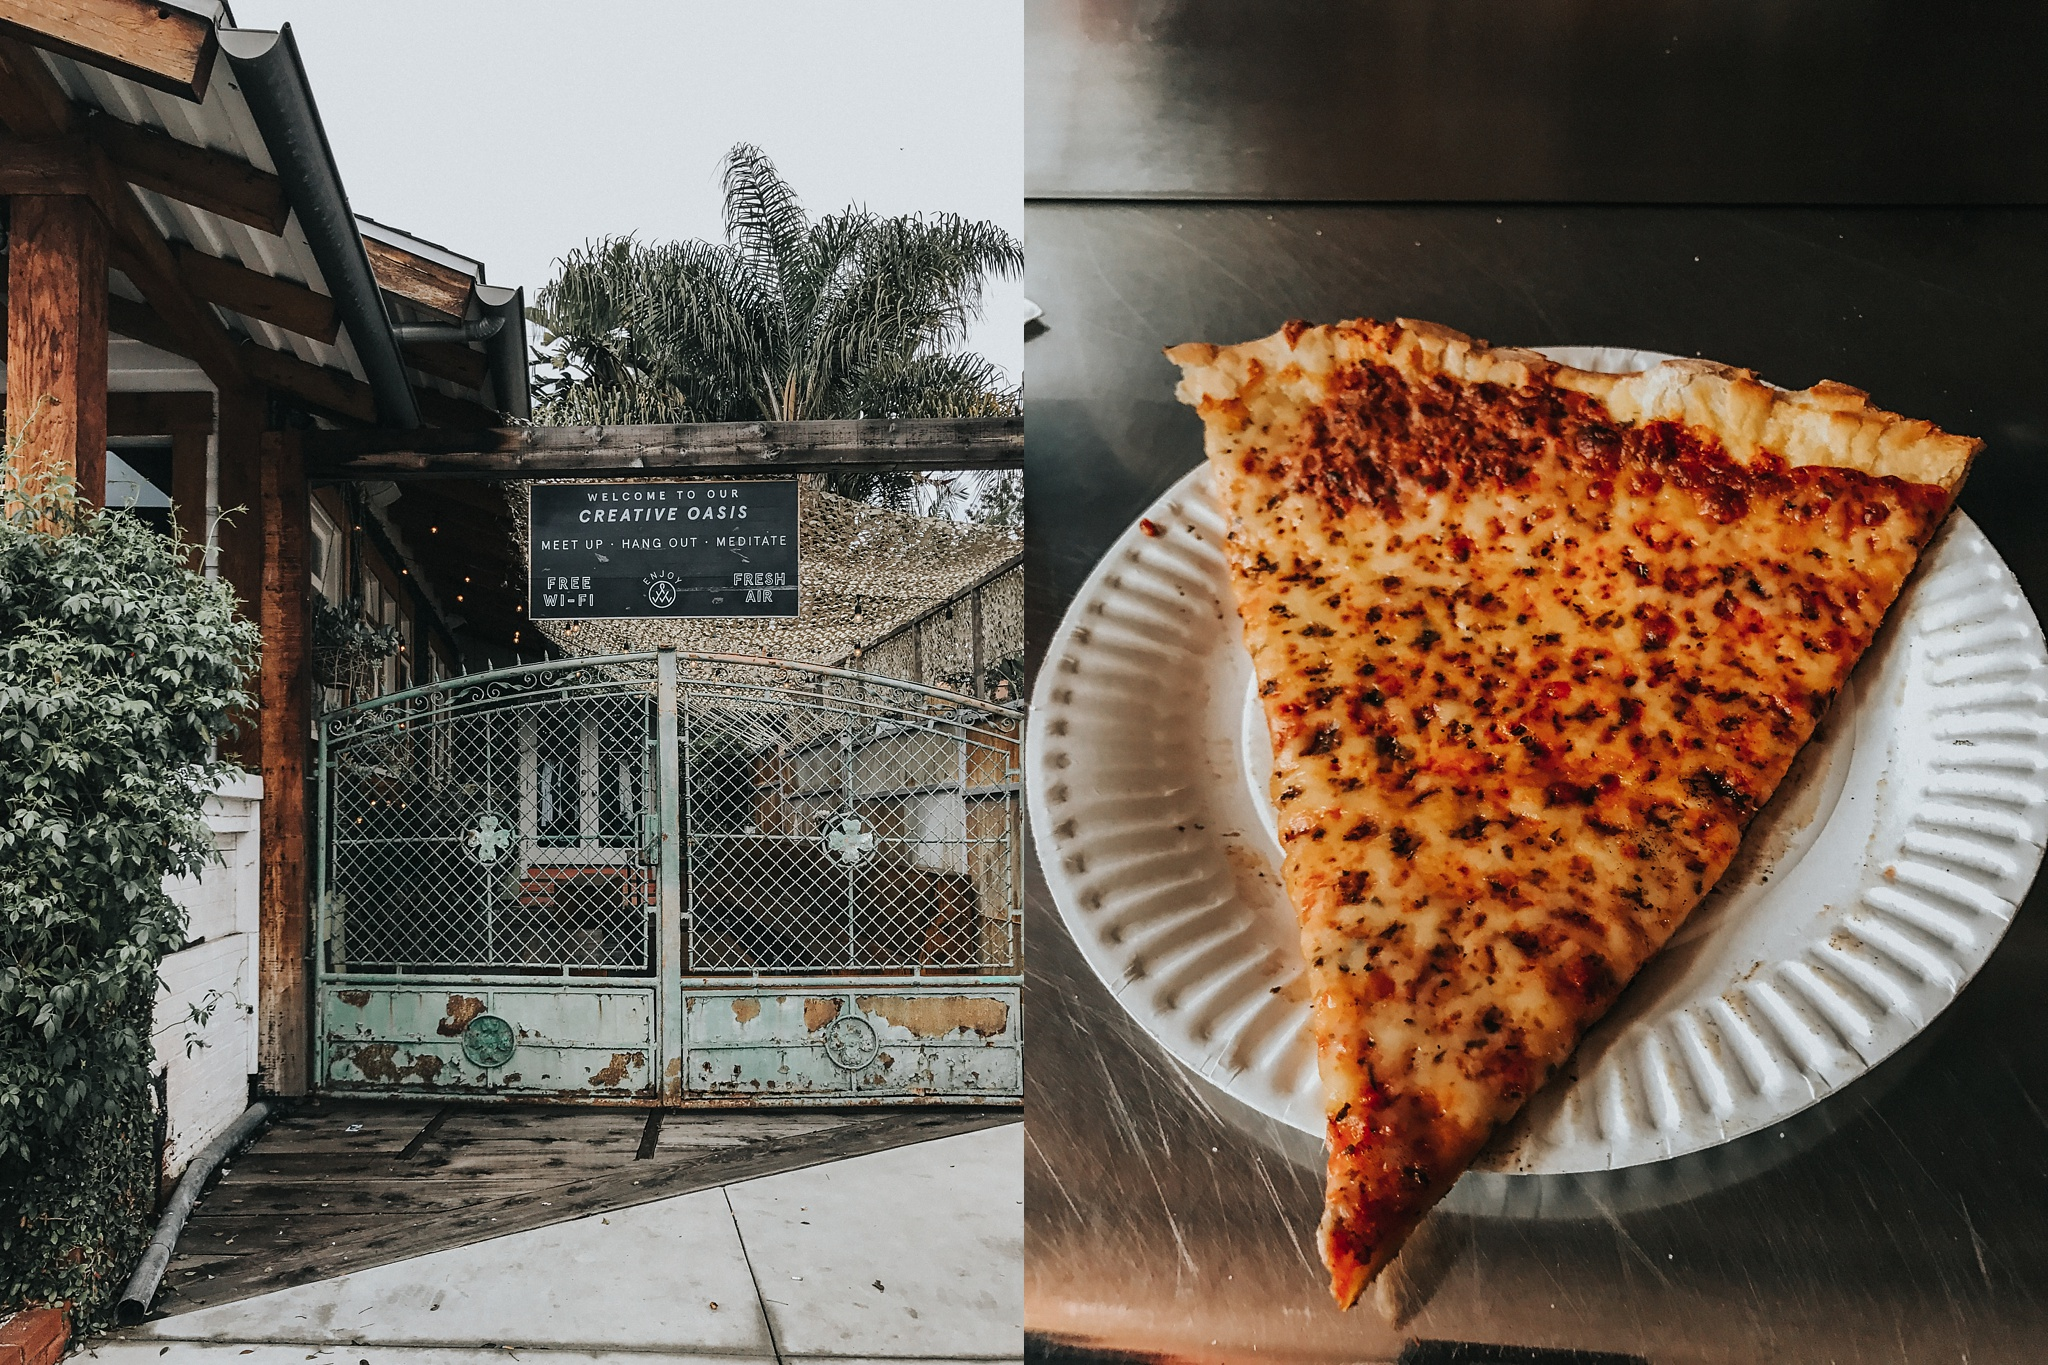 Took a wander and ate some Pizza the size of my face. Welcome to 'Merica.